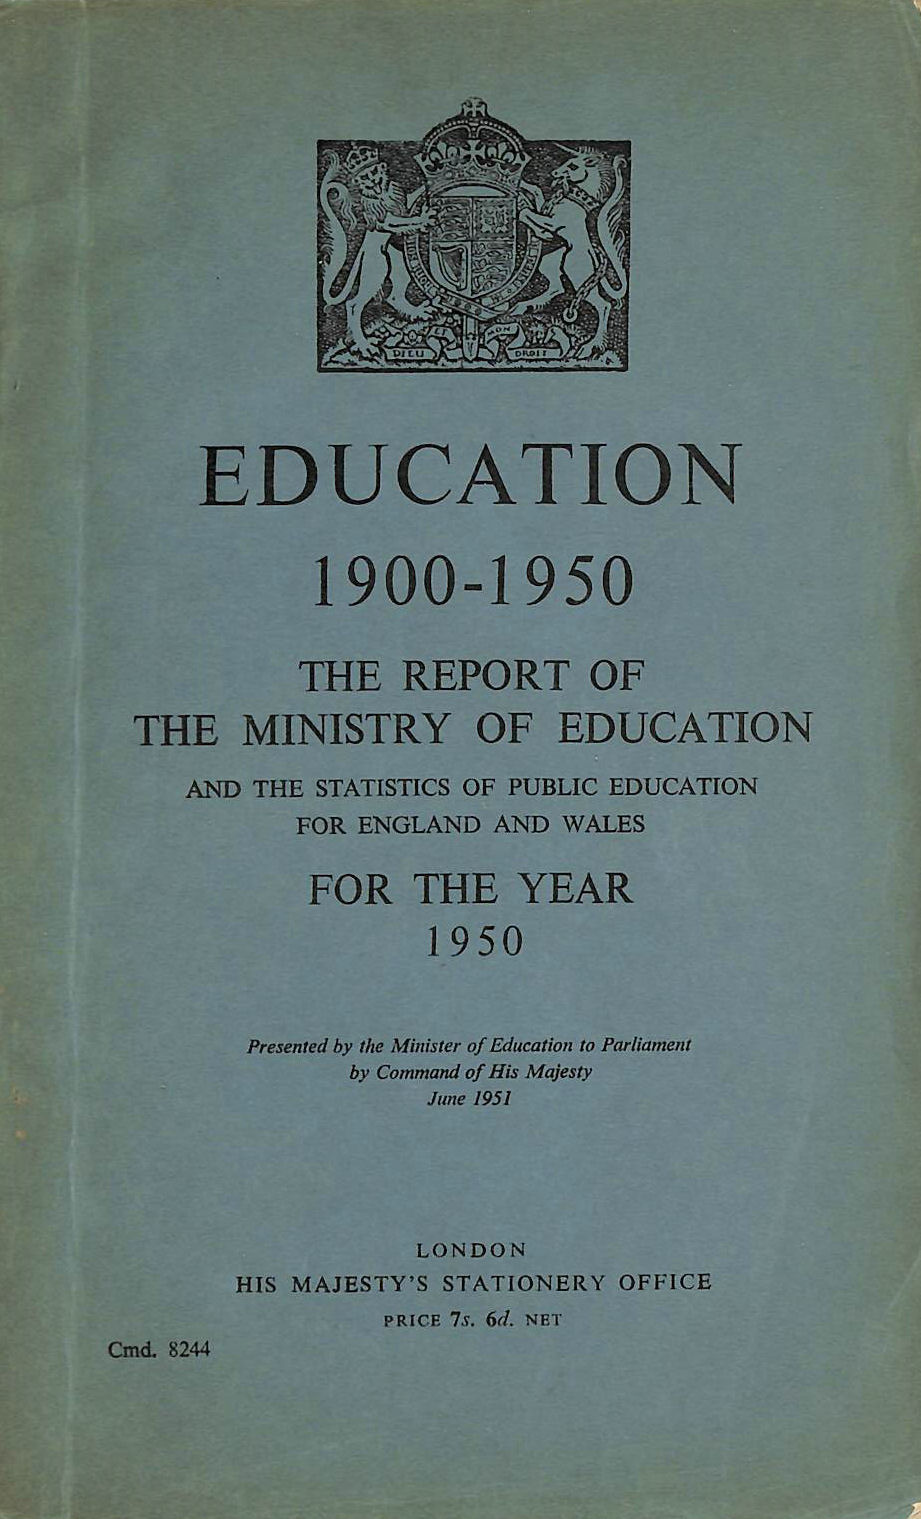 Image for Education 1900 - 1950: The Report of the Ministry of Education and the Statistics of Public Education for England and Wales for the Year 1950.